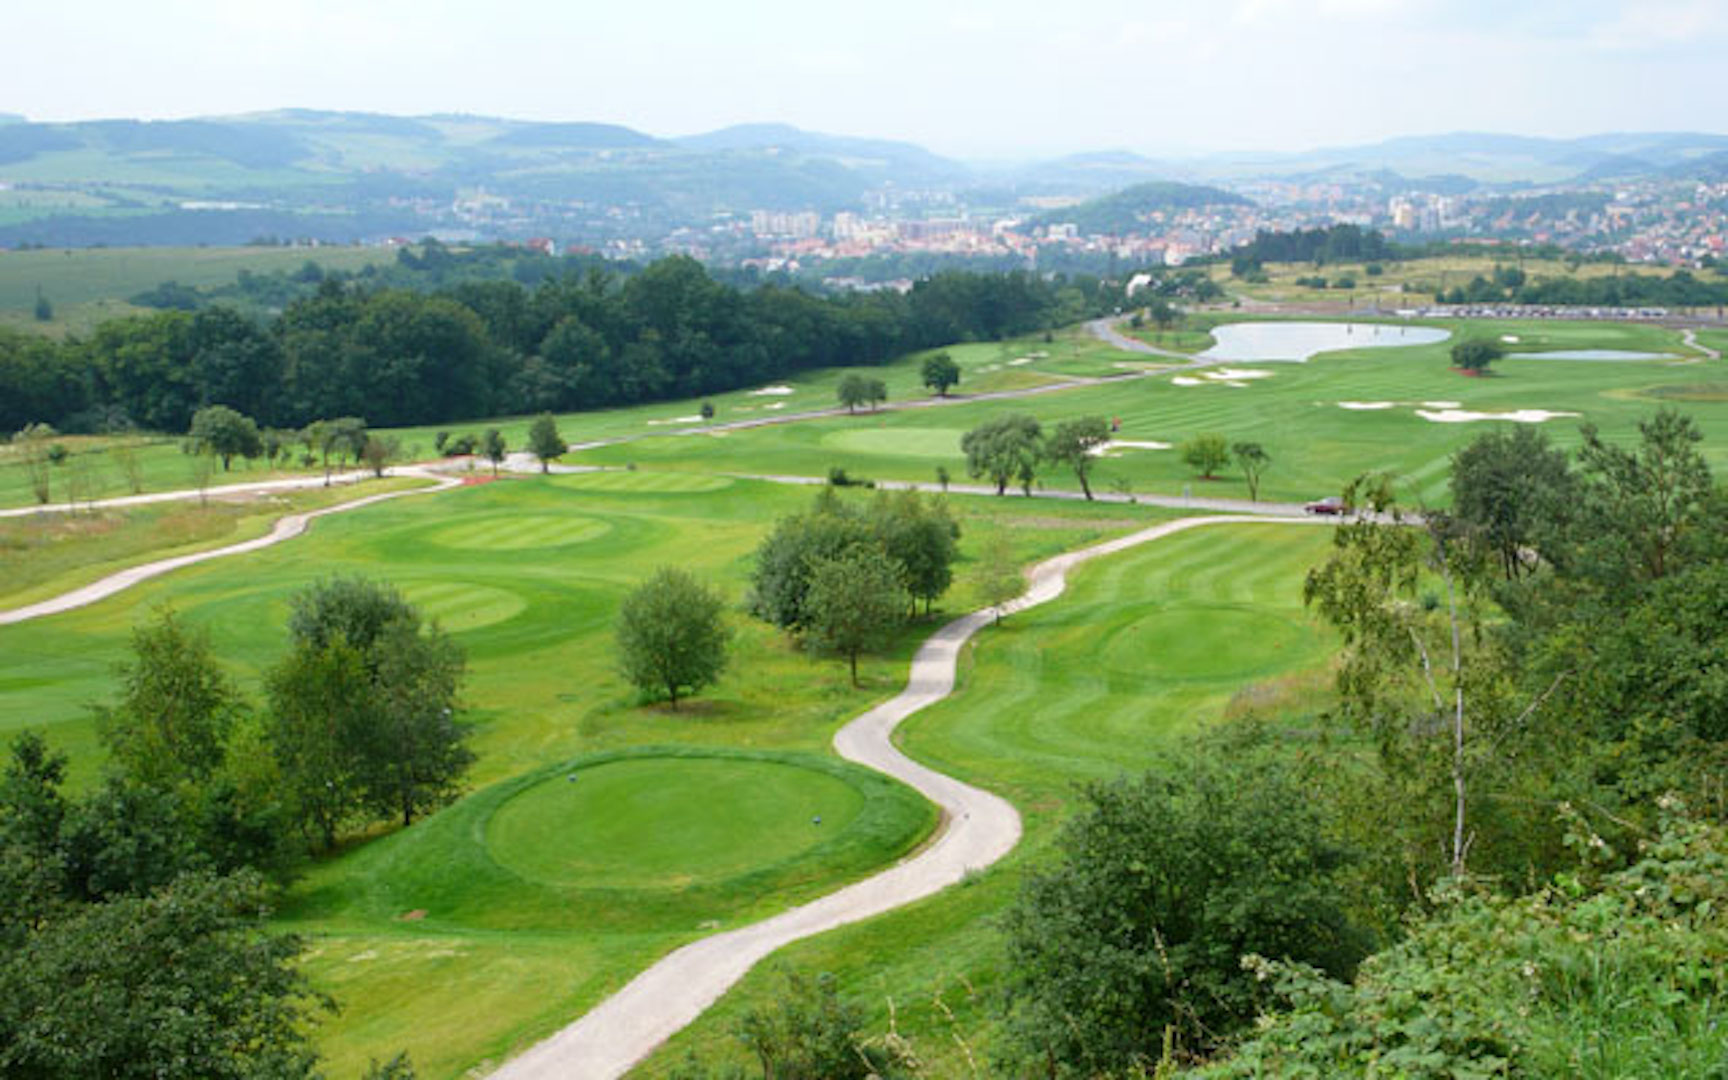 An Unexpected Gem - Golf in the Czech Republic